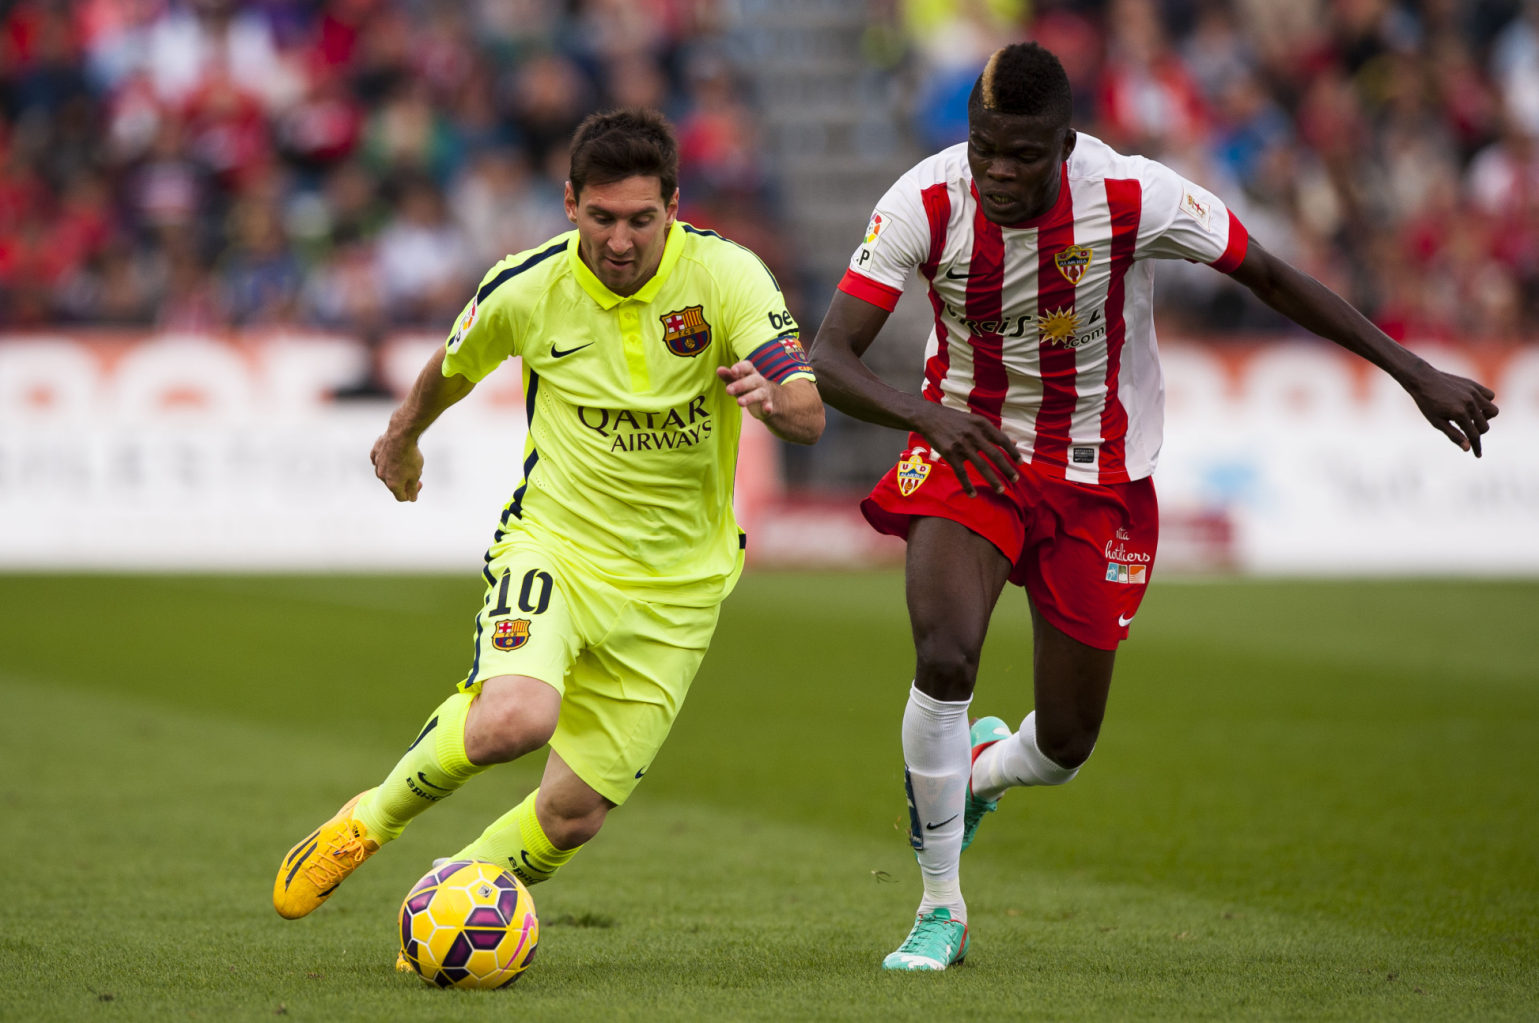 Lionel Messi running past a defender in Almeria vs Barcelona